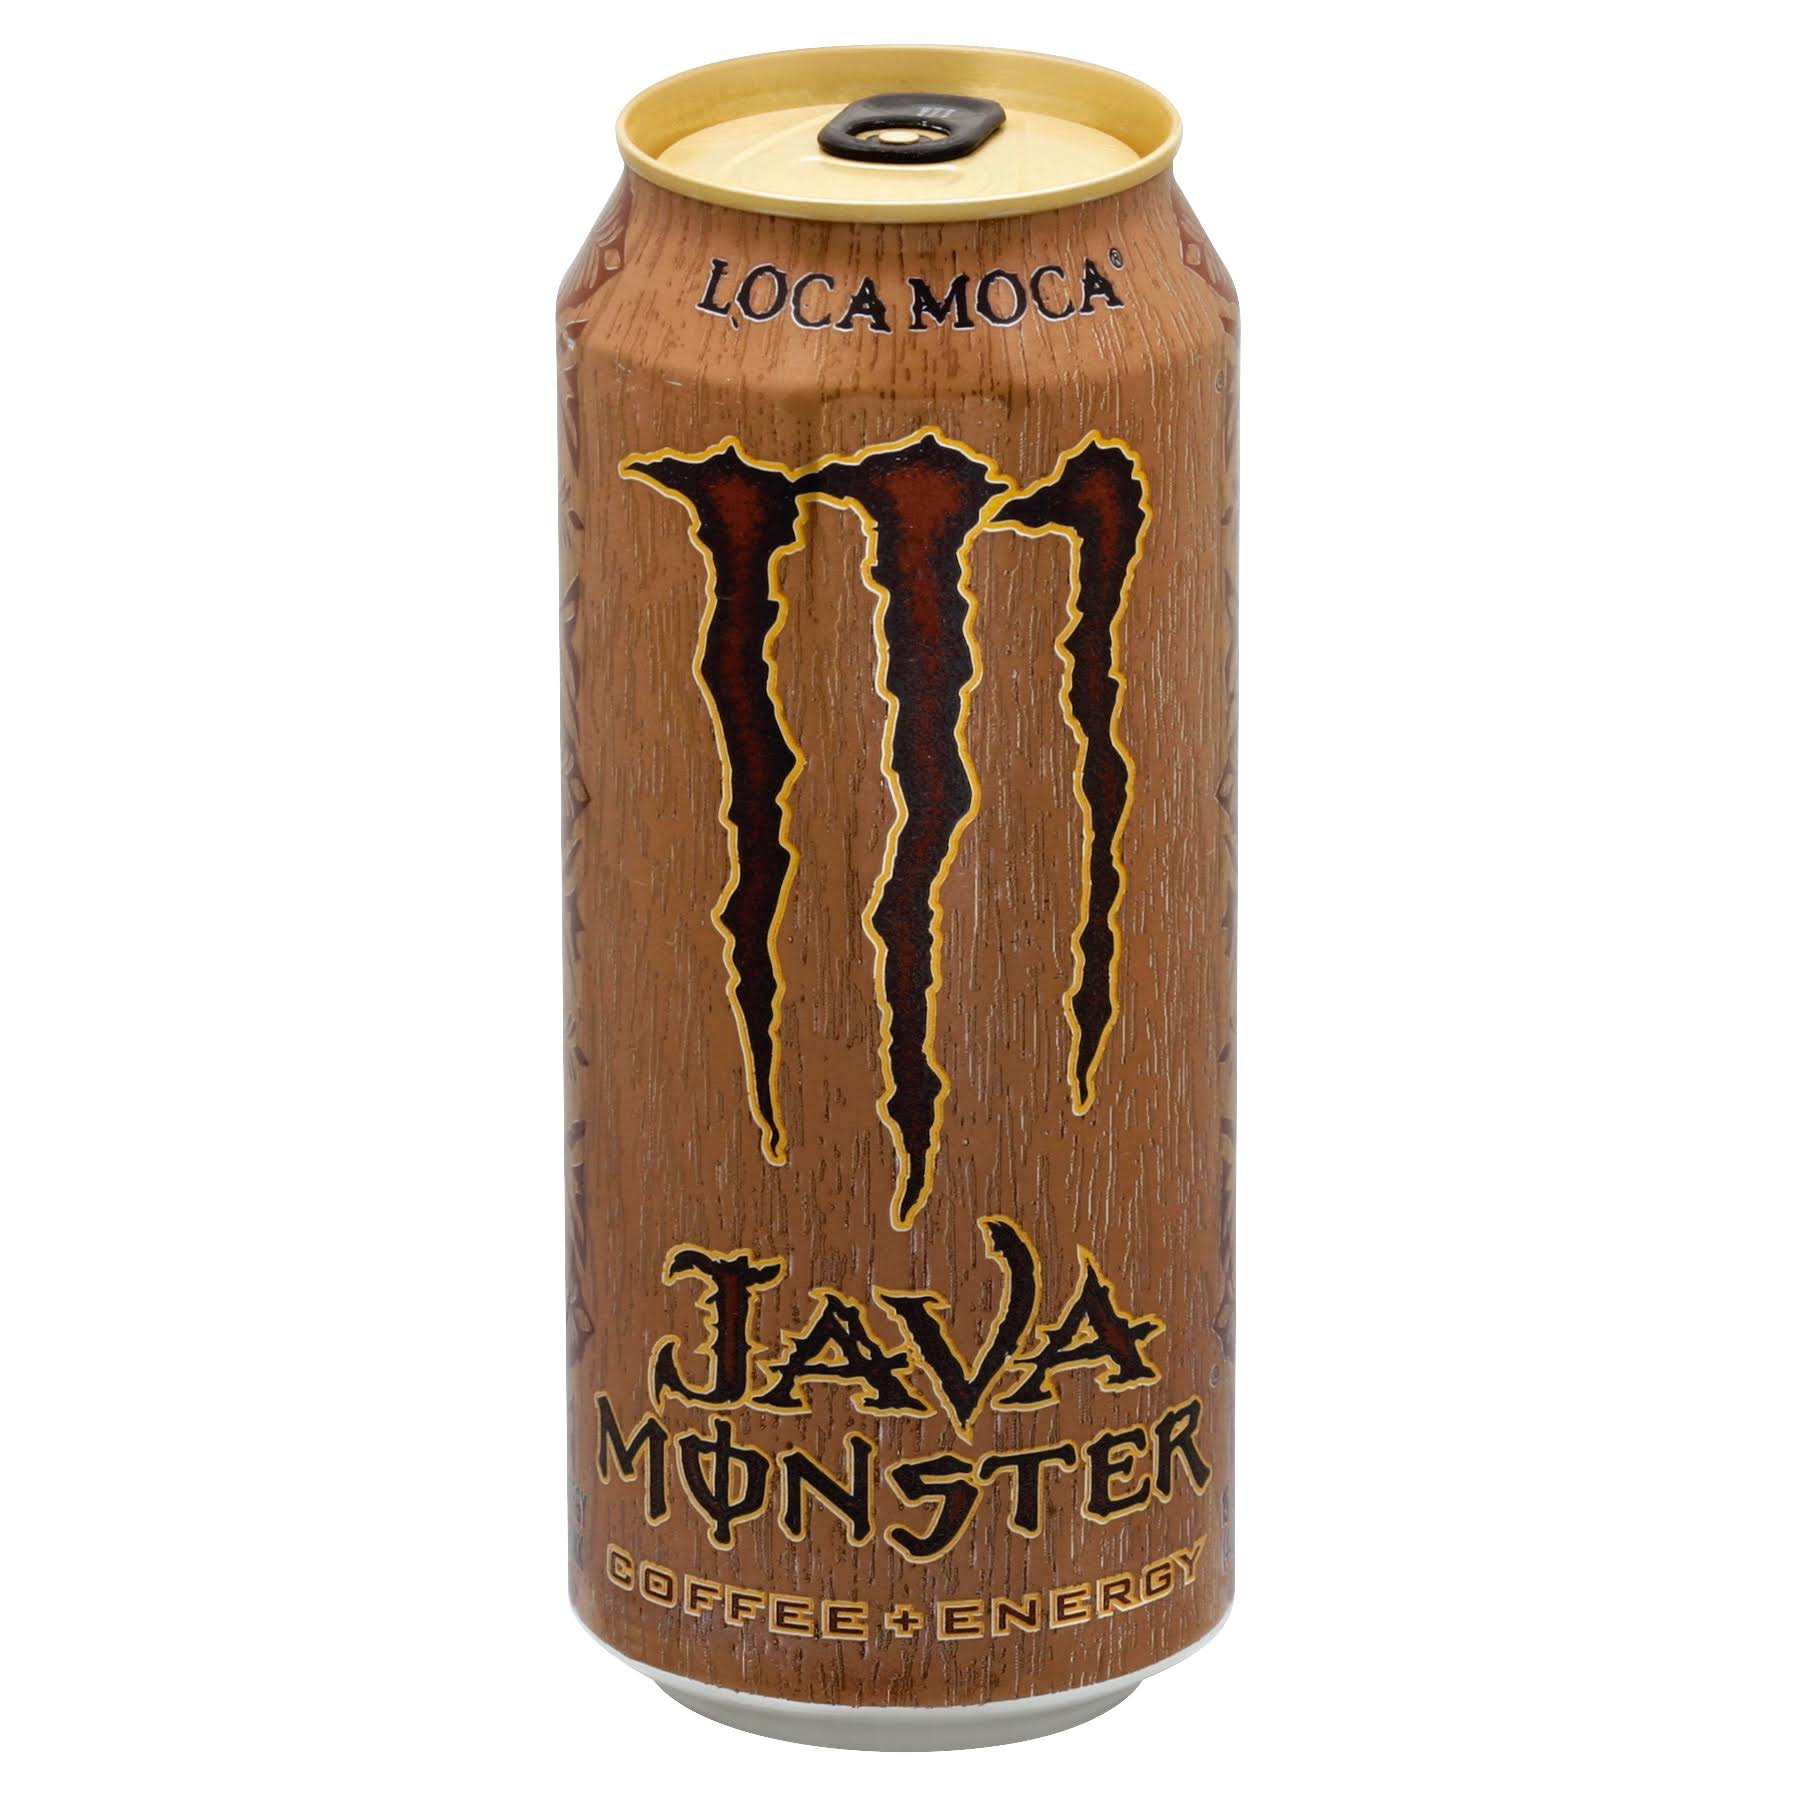 Monster Coffee + Energy Java Loca Moca